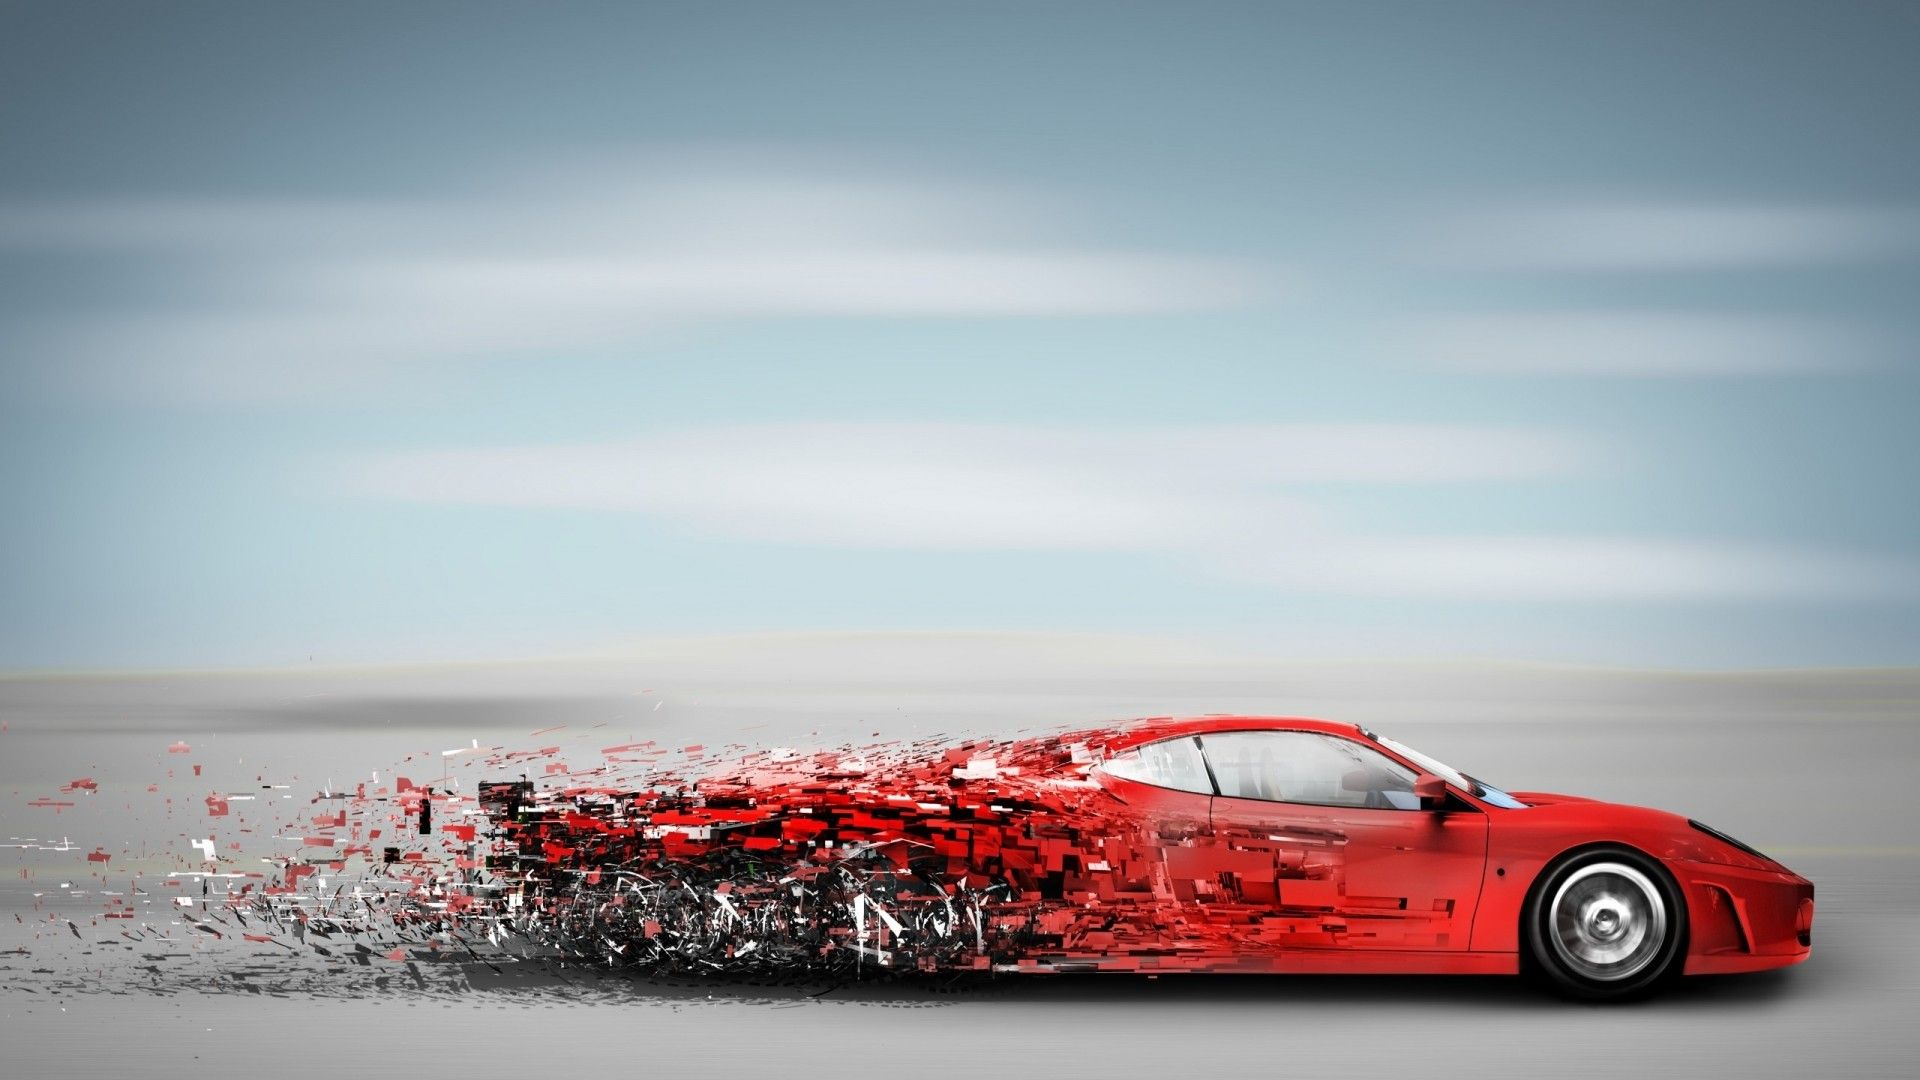 Abstract Red Speedy Car Sport Car Wallpaper Abstract Wallpapers